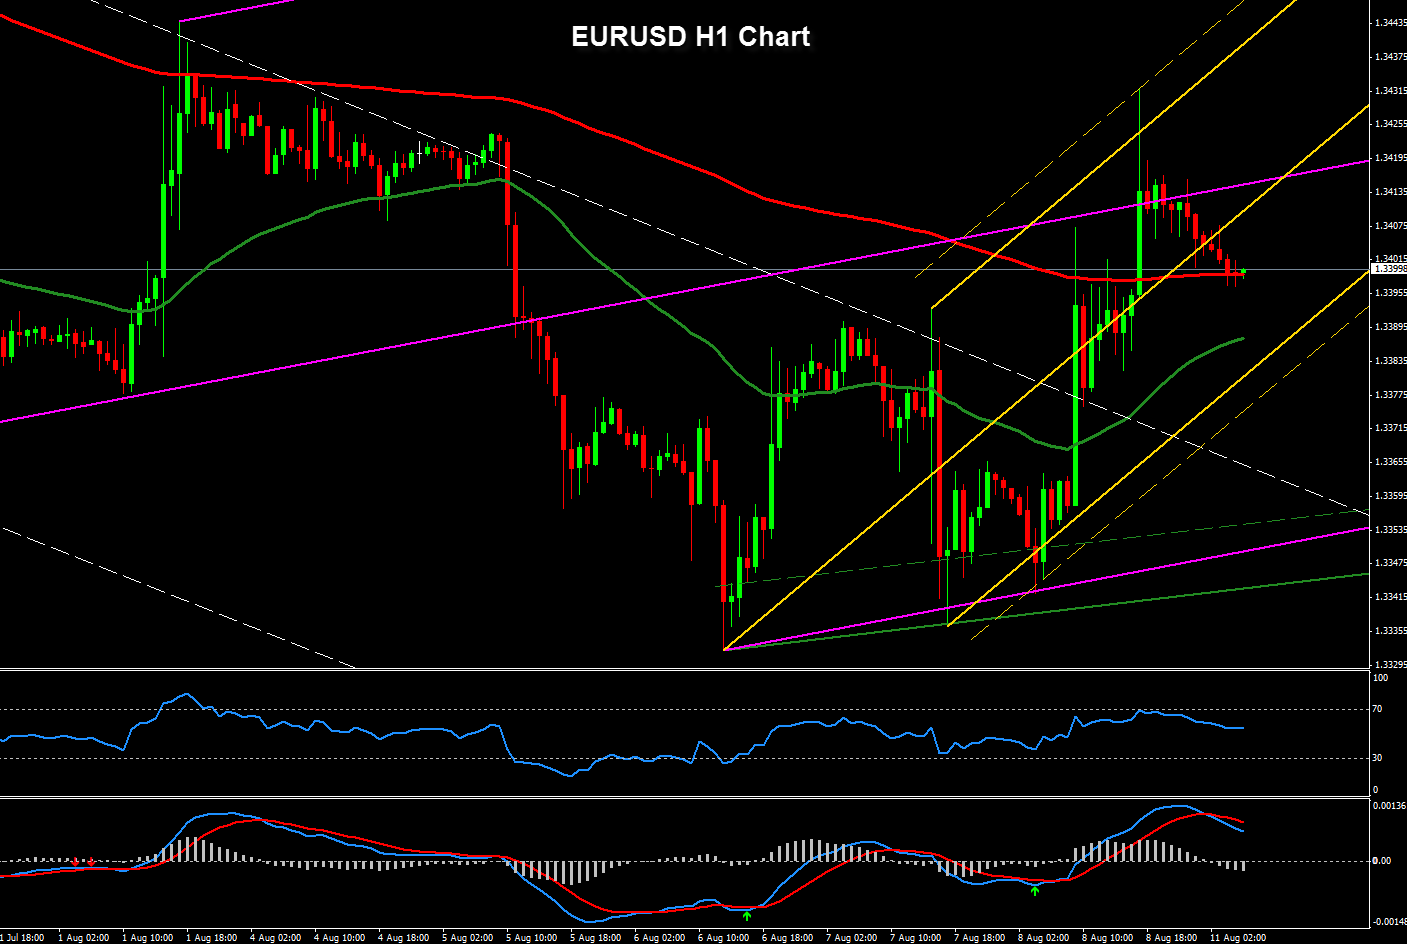 Forex Technical Analysis of EURUSD 1H Chart. August 11, 2014